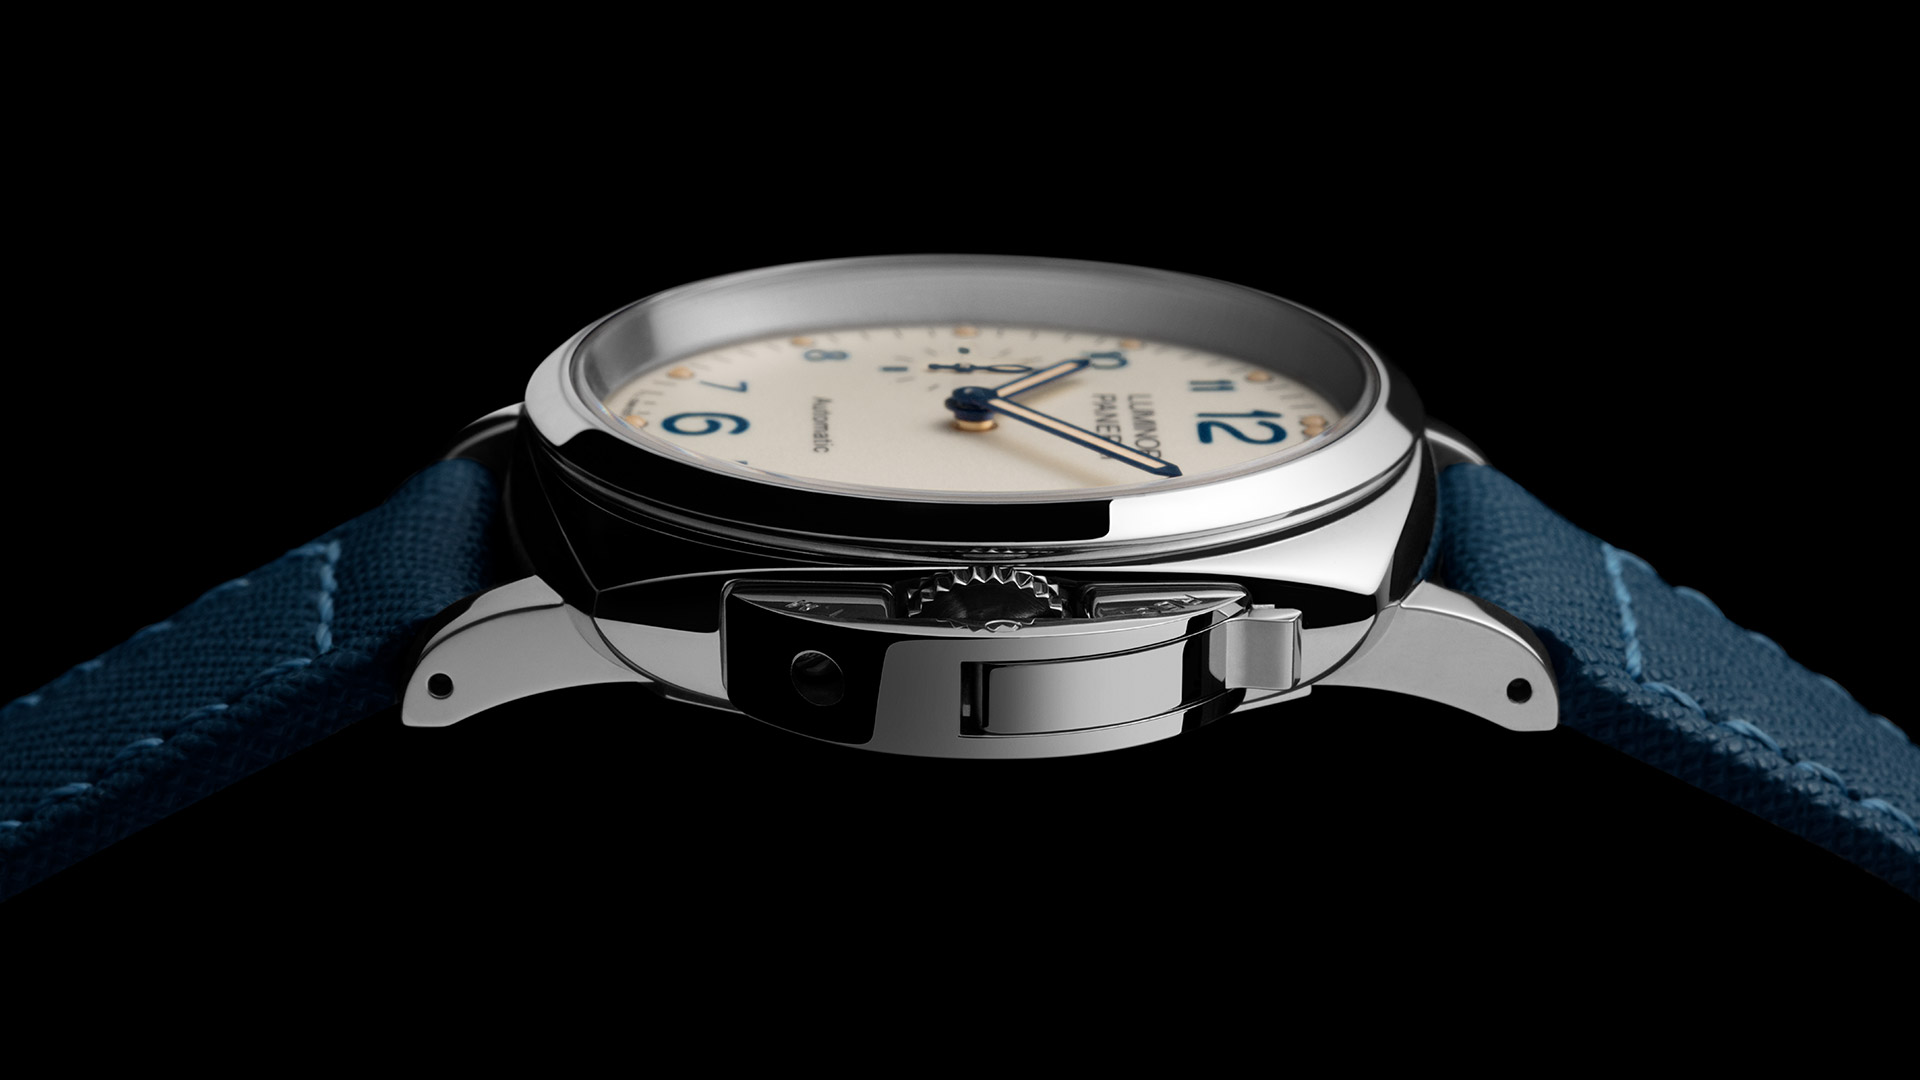 PANERAI LUMINOR DUE 3 DAYS AUTOMATIC ACCIAIO 38MM (PAM00903)